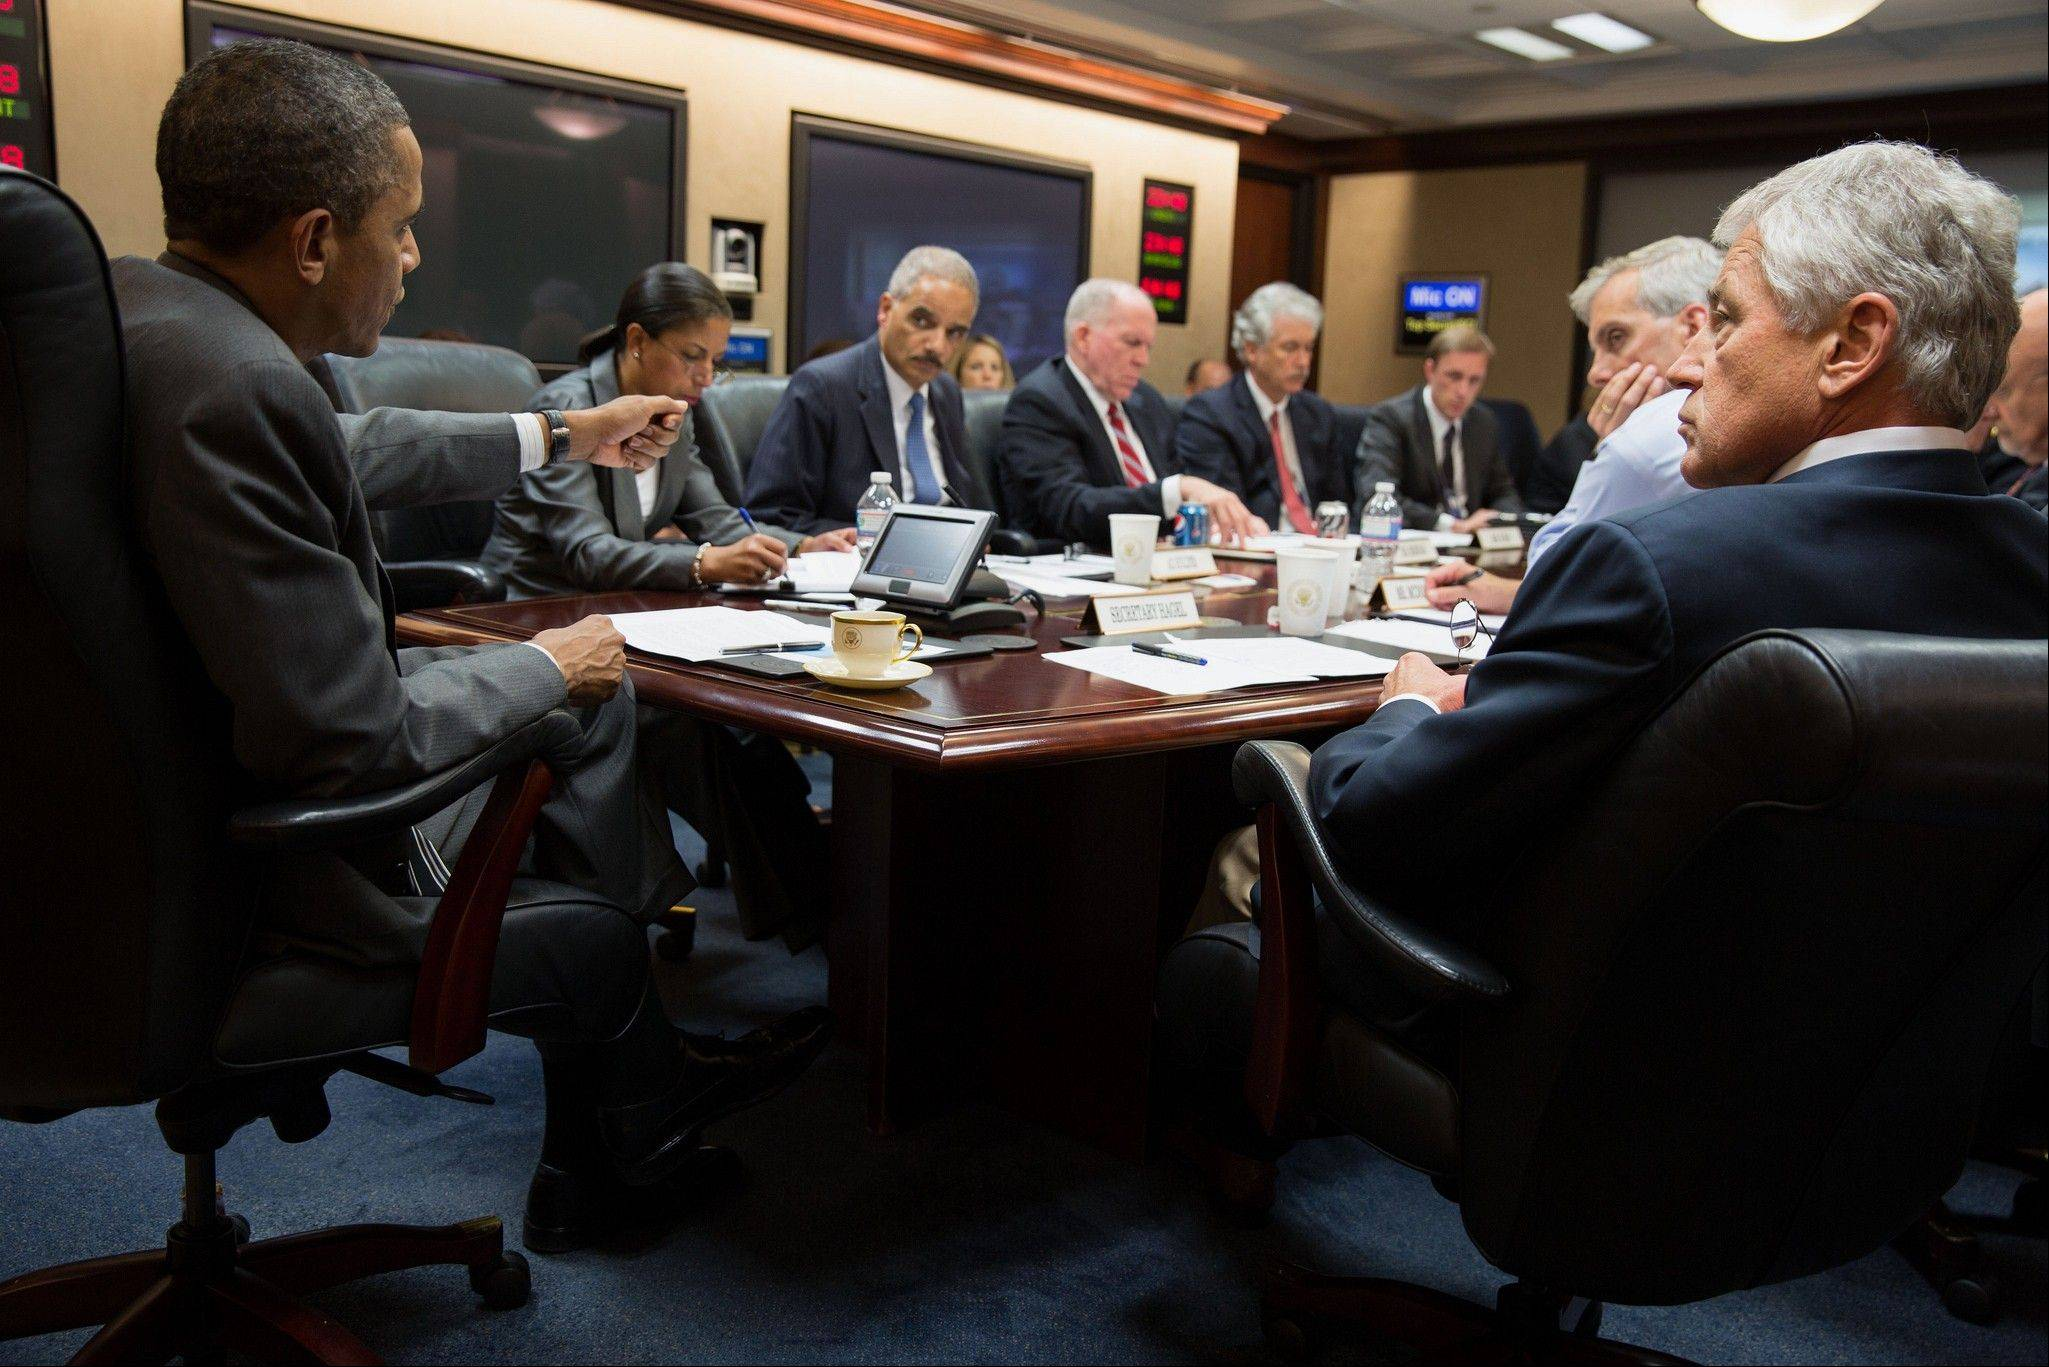 President Barack Obama, left, meets with members of his national security team to discuss the situation in Egypt in the Situation Room of the White House in Washington. While the Obama administration throws its support behind Egypt�s military, some members of Congress are looking at withholding some or all of America�s annual $1.5 billion aid package if a civilian government isn�t quickly restored.